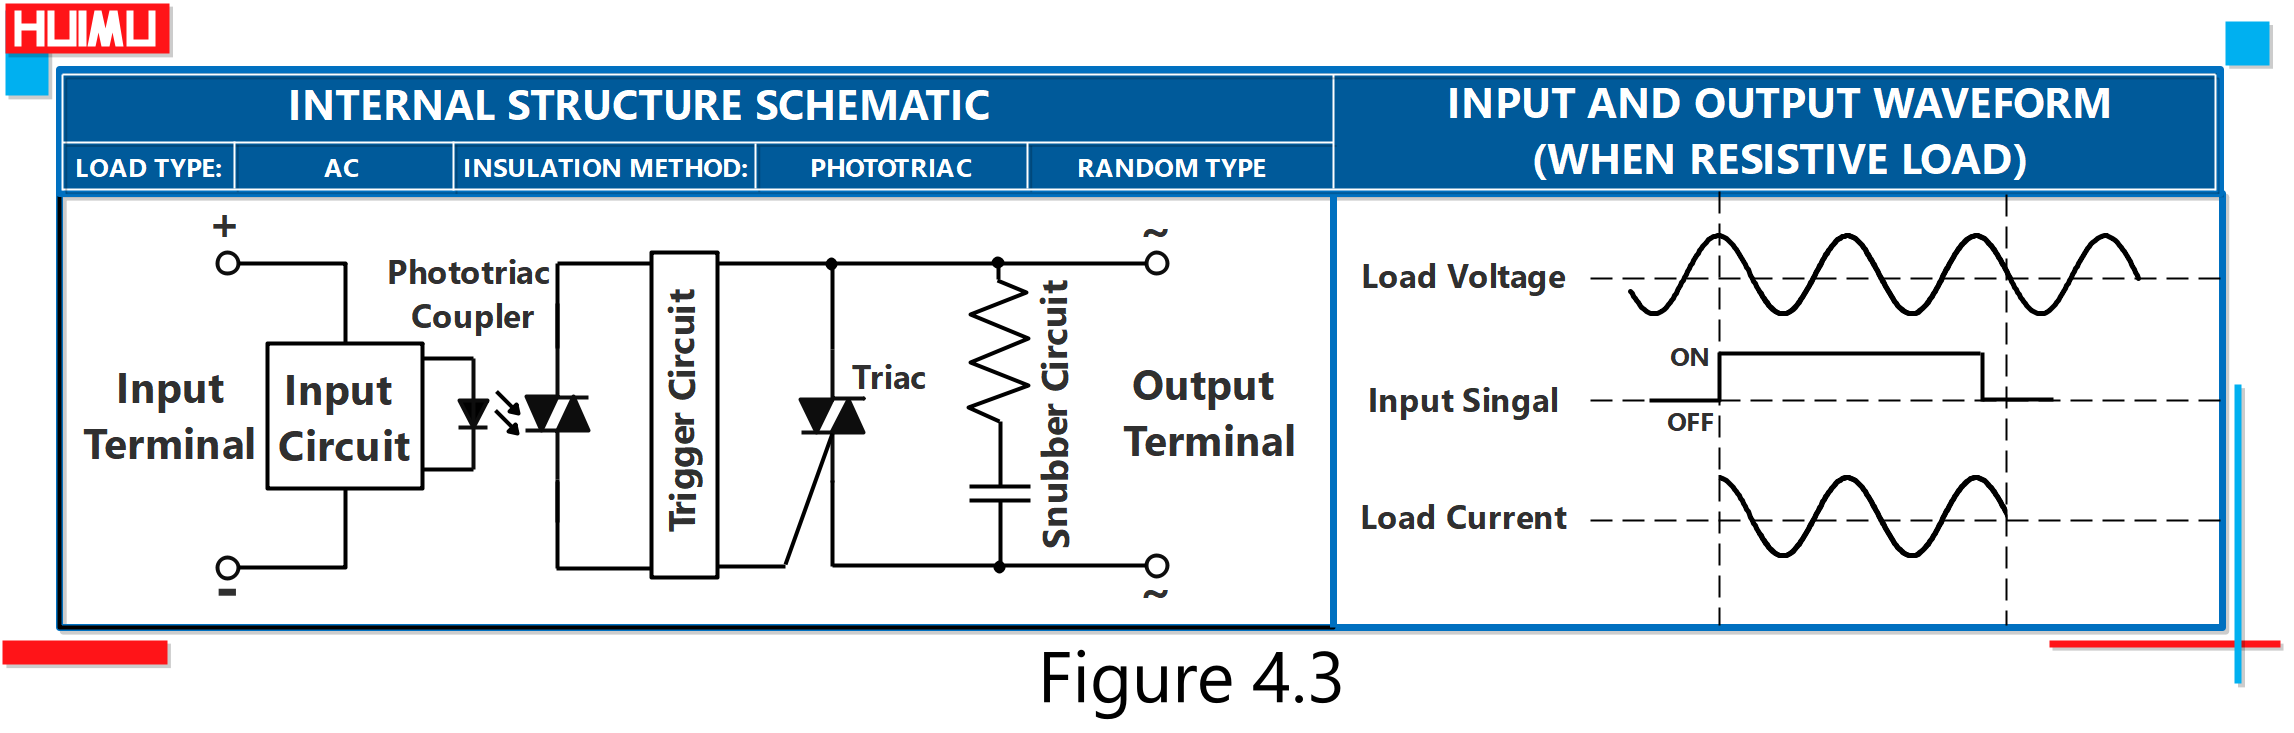 The internal structure schematic and waveform of Random Conduction Type AC solid state relays